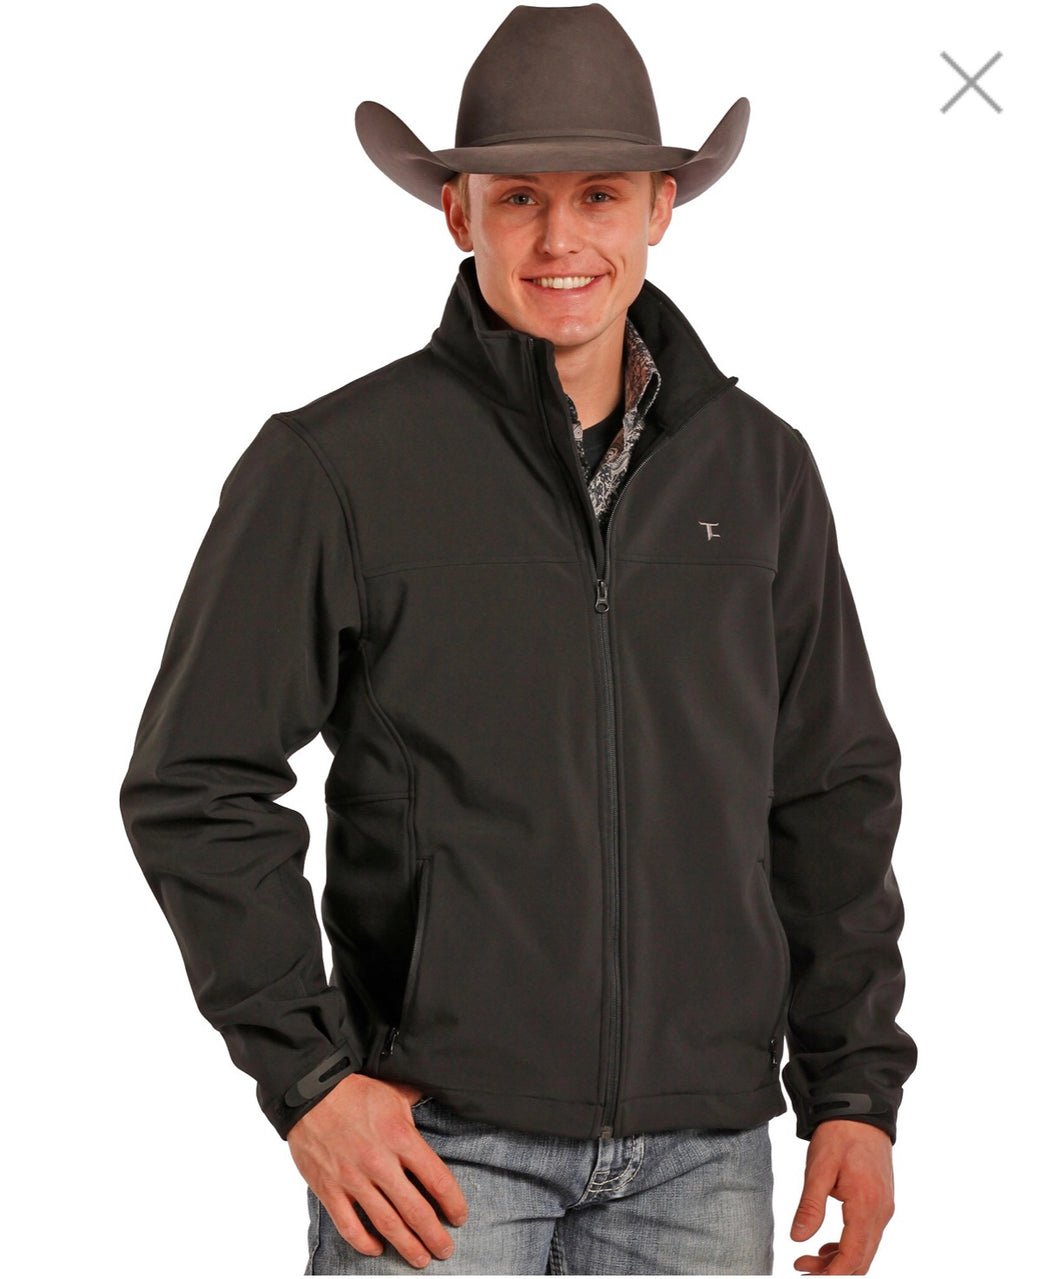 LARGE ONLY TUF COOPER PERFORMANCE JACKET (FREE SHIPPING)